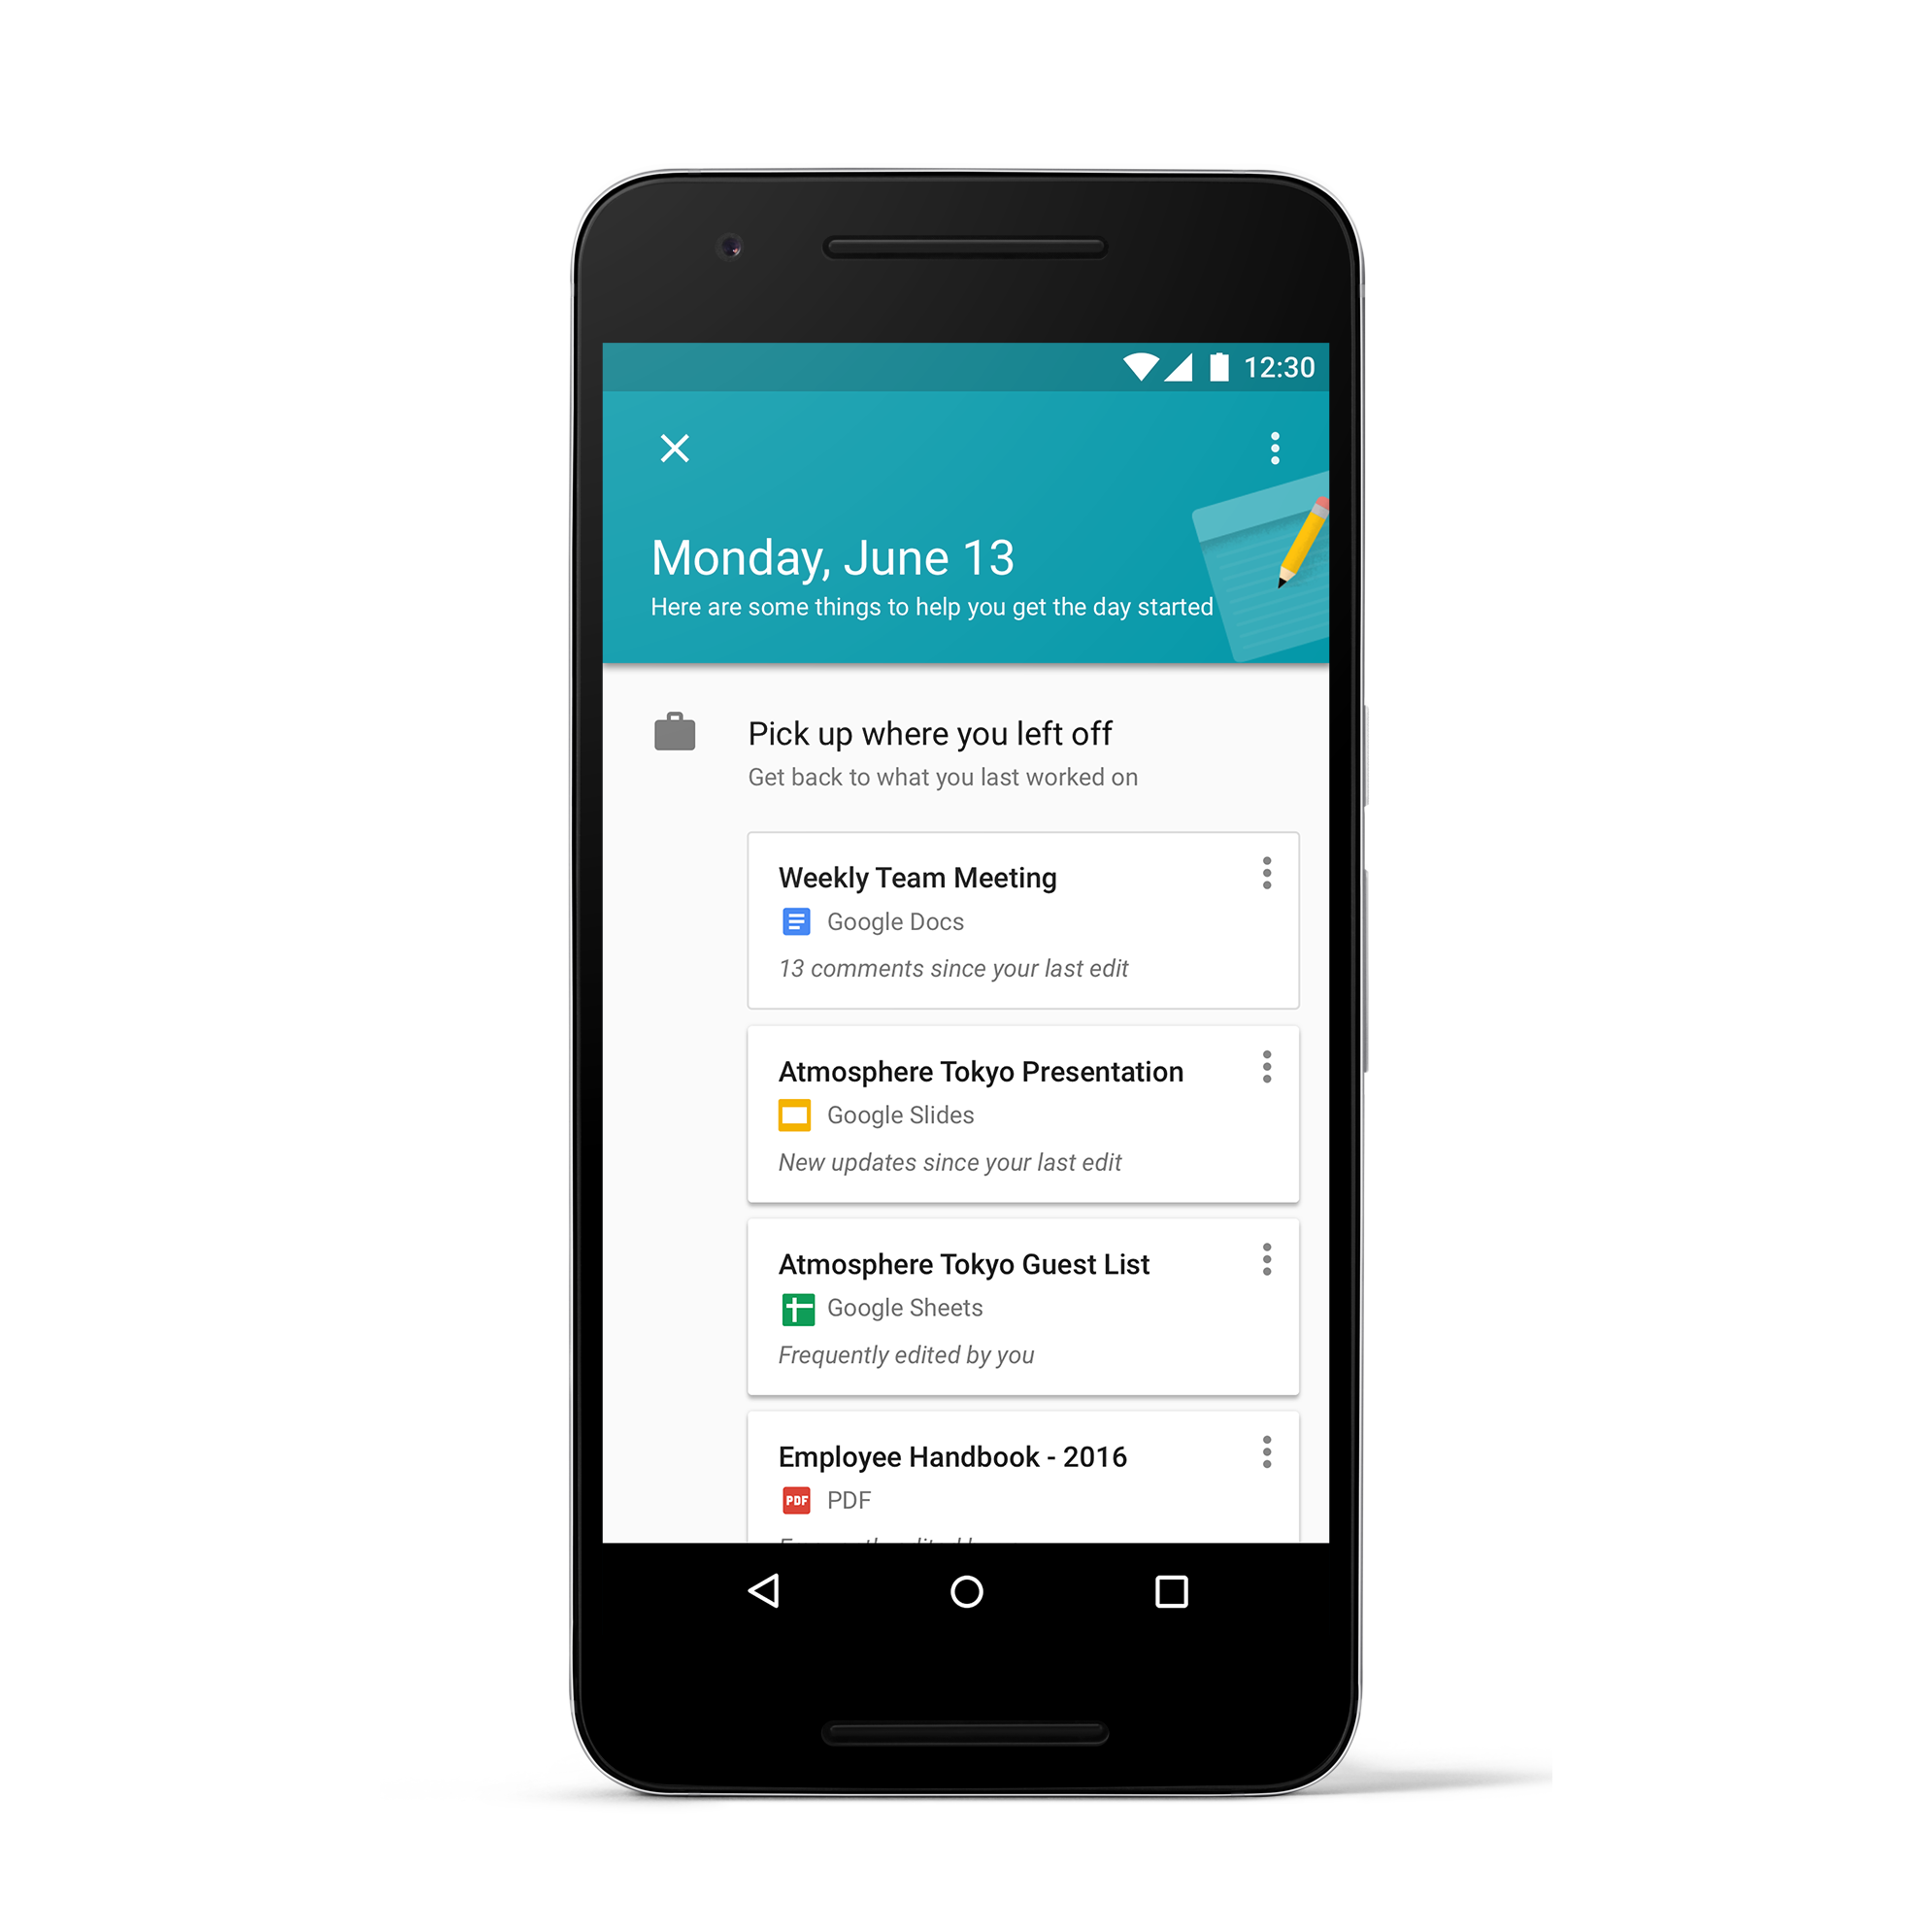 Google Launches Search Engine for Enterprise Customers